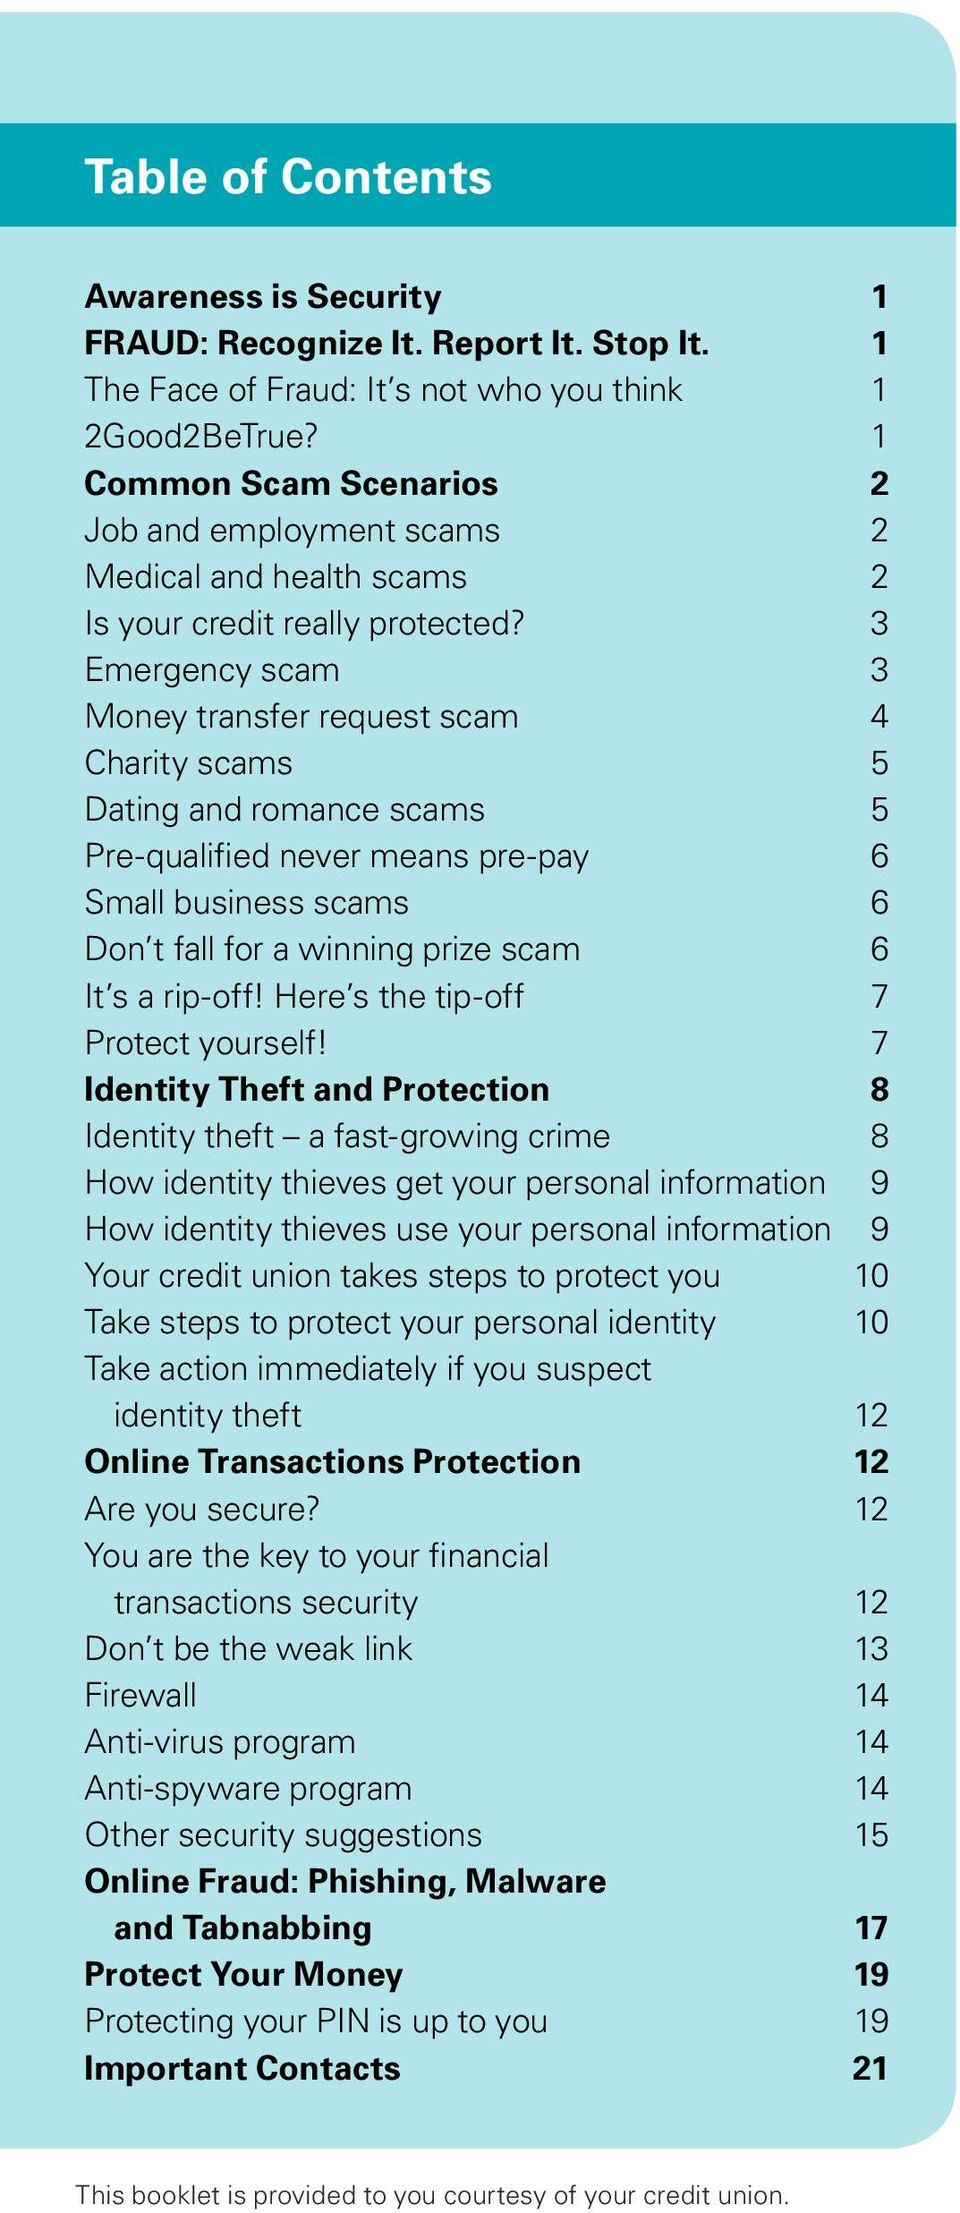 3 Emergency scam 3 Money transfer request scam 4 Charity scams 5 Dating and romance scams 5 Pre-qualified never means pre-pay 6 Small business scams 6 Don t fall for a winning prize scam 6 It s a